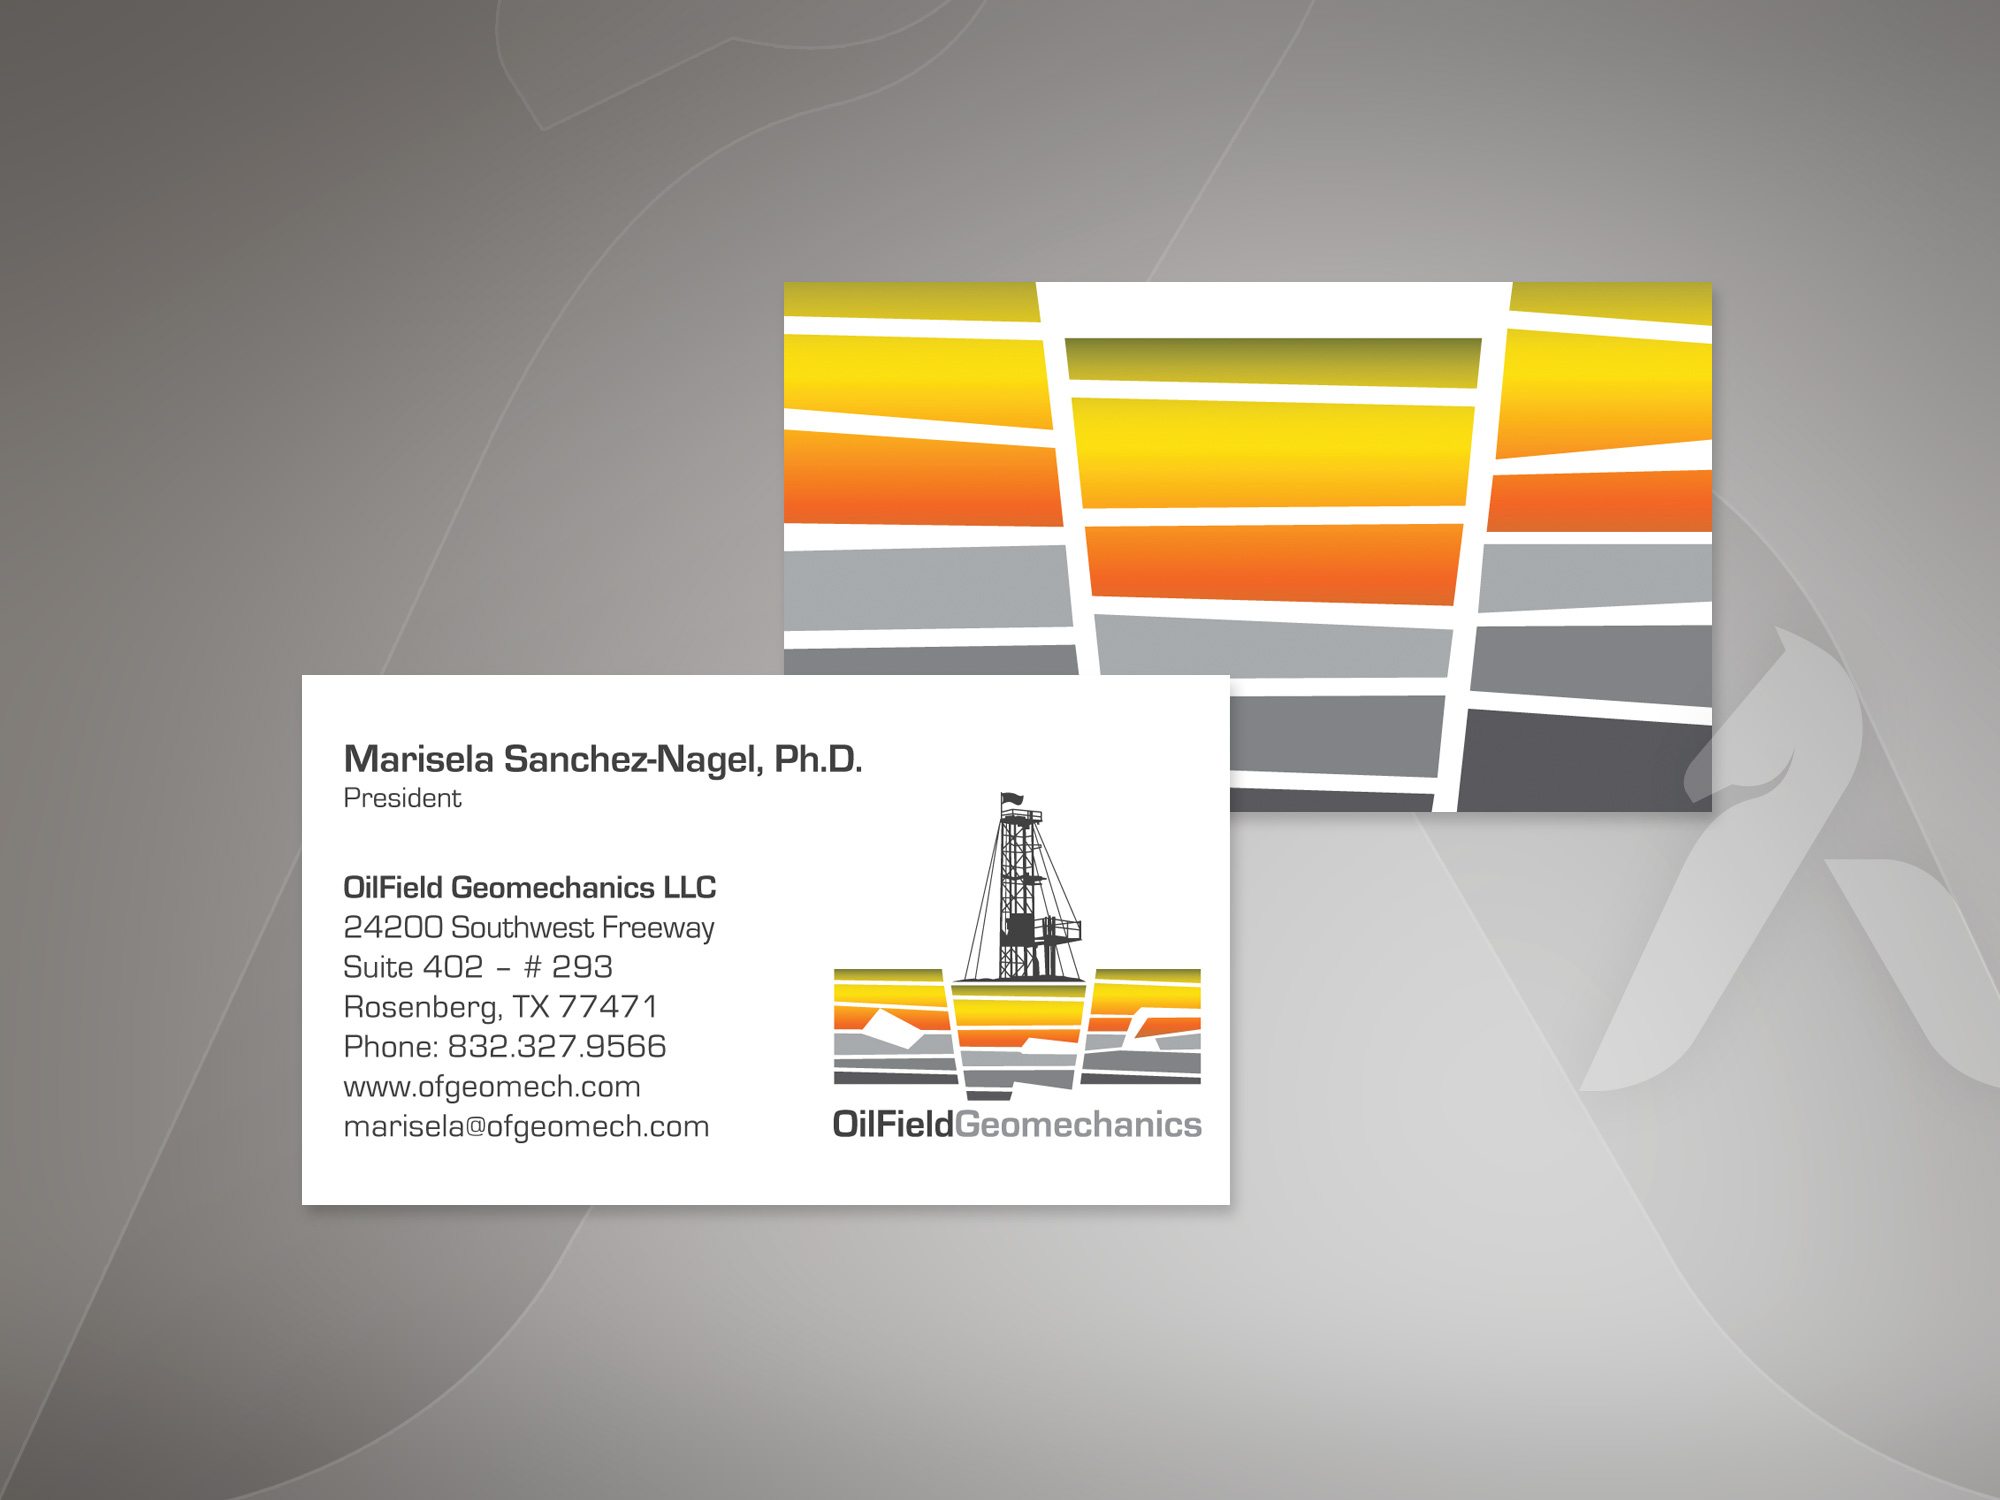 Oilfield Geomechanics logo & business card design by Hakubashi